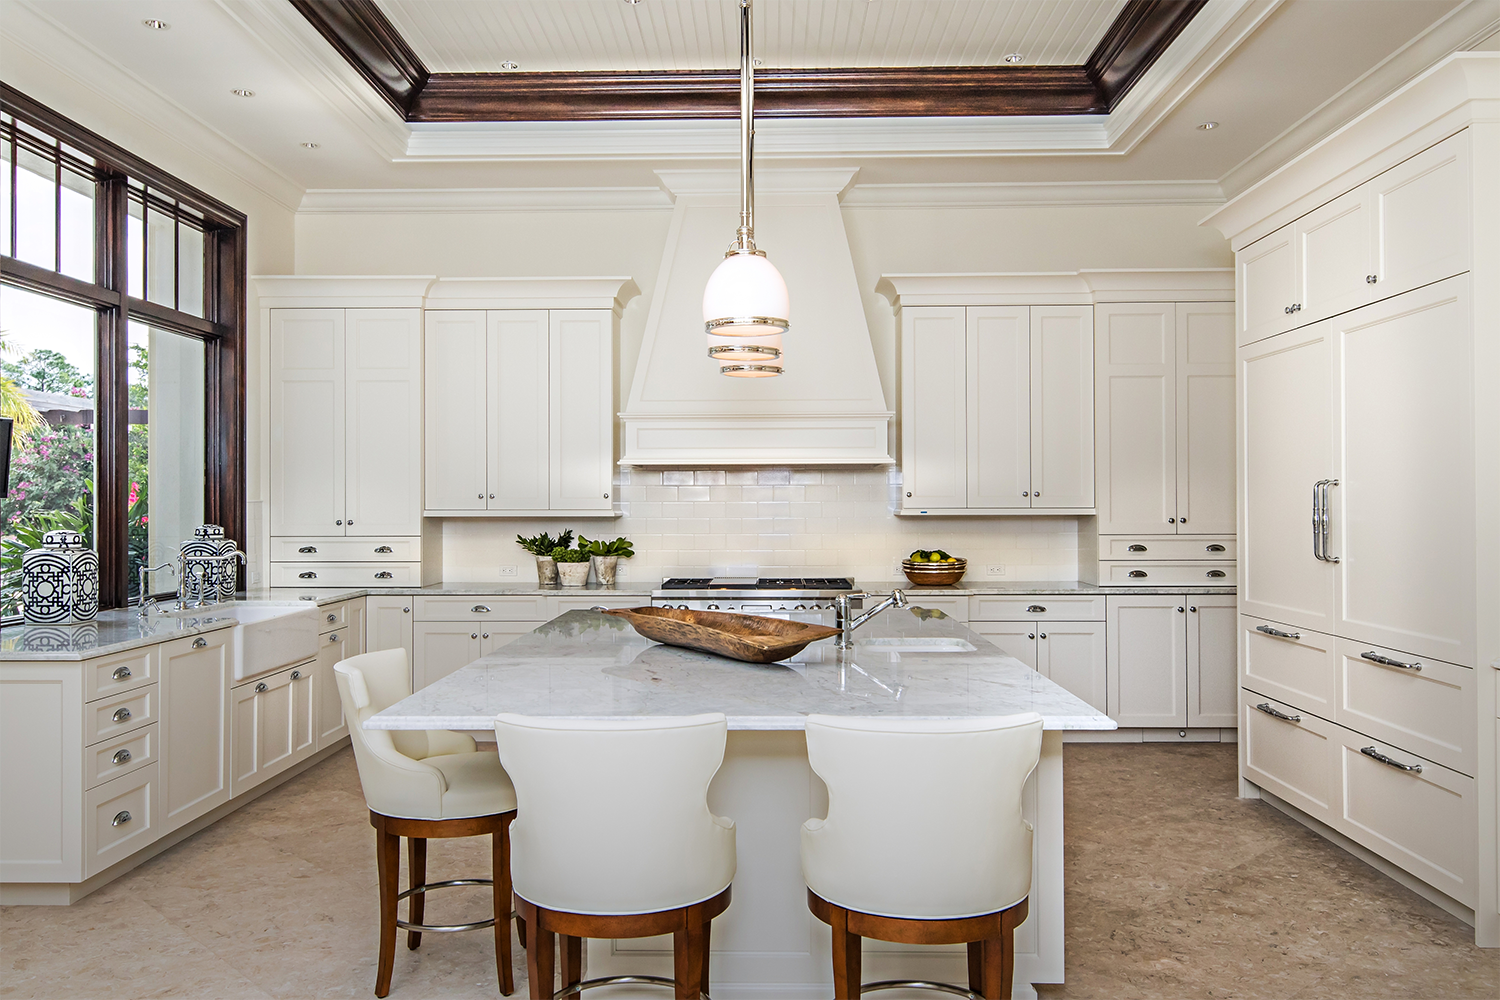 Using Cabinetry To Make An All-White Kitchen Interesting – JLJ Back ...